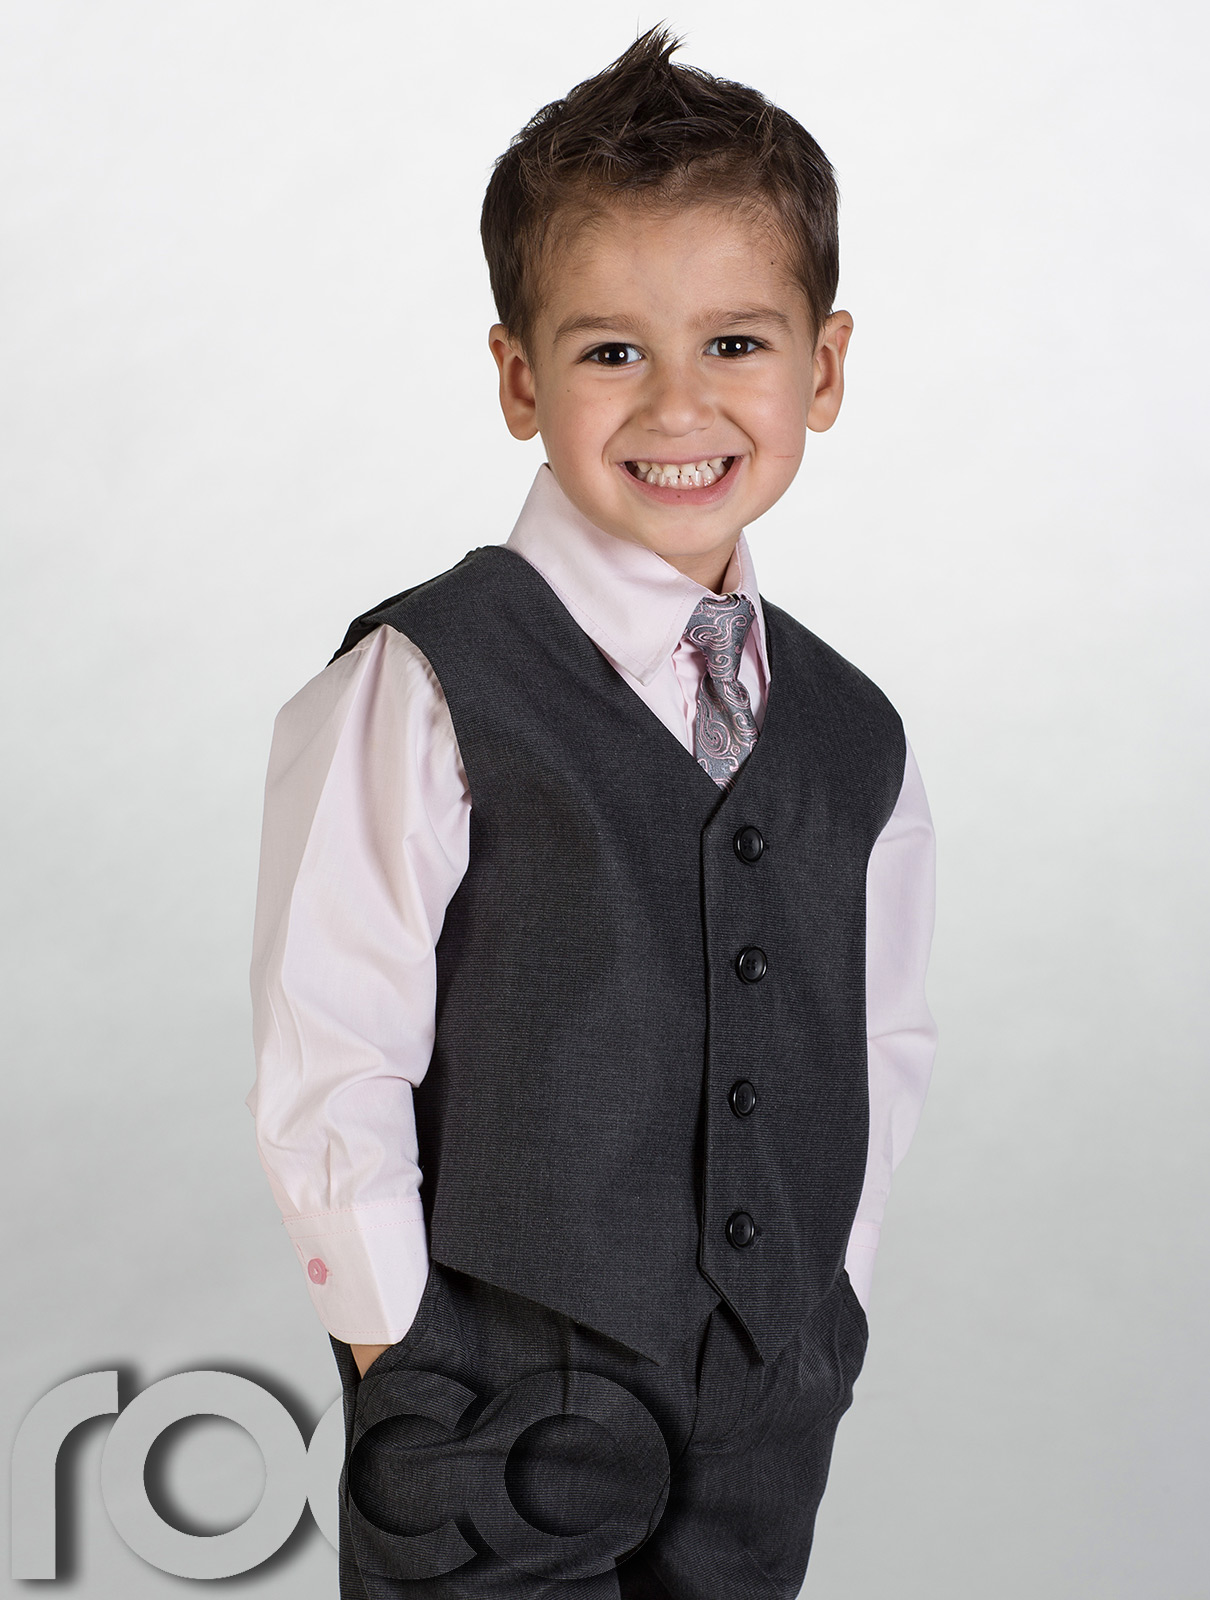 Baby Boy Suit, Toddler Short Sleeve Rompers Infant Outfit by TNYKER. 4 out of 5 stars $ - $ $ 16 $ 17 Boys Dark Grey 2 Button Wedding Suit. by Tuxgear. out of 5 stars 4. $ - $ $ 49 $ 64 See Size Options. Dark Gray Baby Boy .